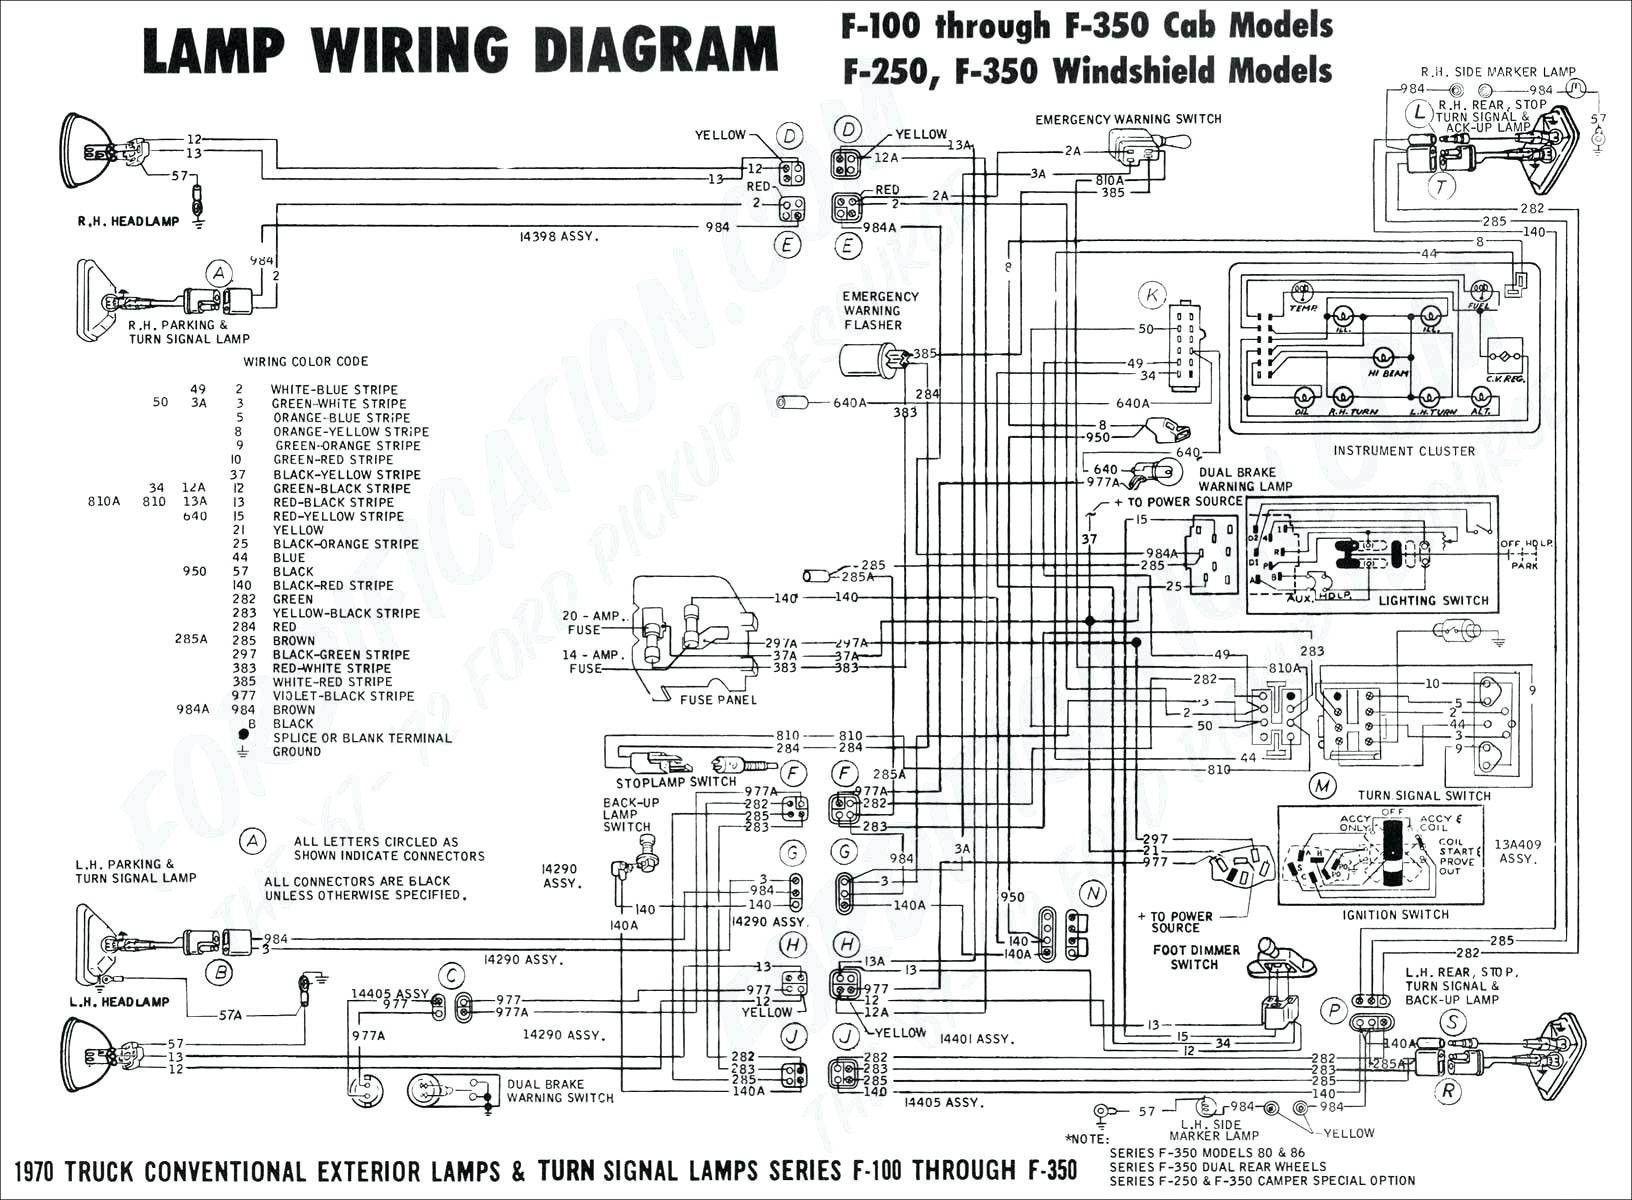 Autometer Shift Light Wiring Diagram Autometer Tach Wiring Diagram Autometer Tach Wiring Diagram with Of Autometer Shift Light Wiring Diagram